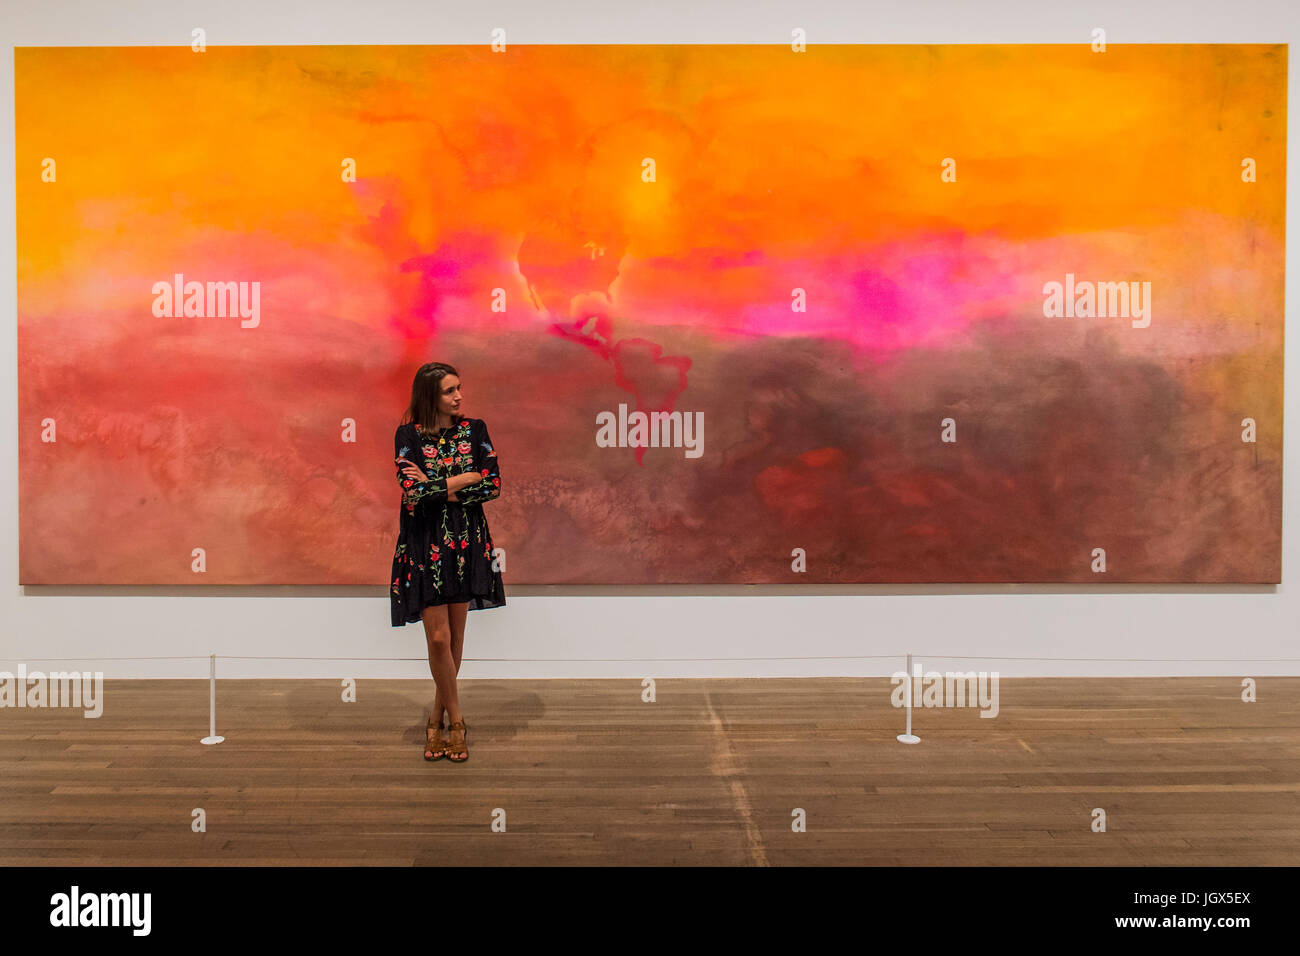 London, UK. 11th Jul, 2017. Texas Louise 1971 by Frank Bowling - Soul of a Nation: Art in the Age of Black Power, - Stock Image